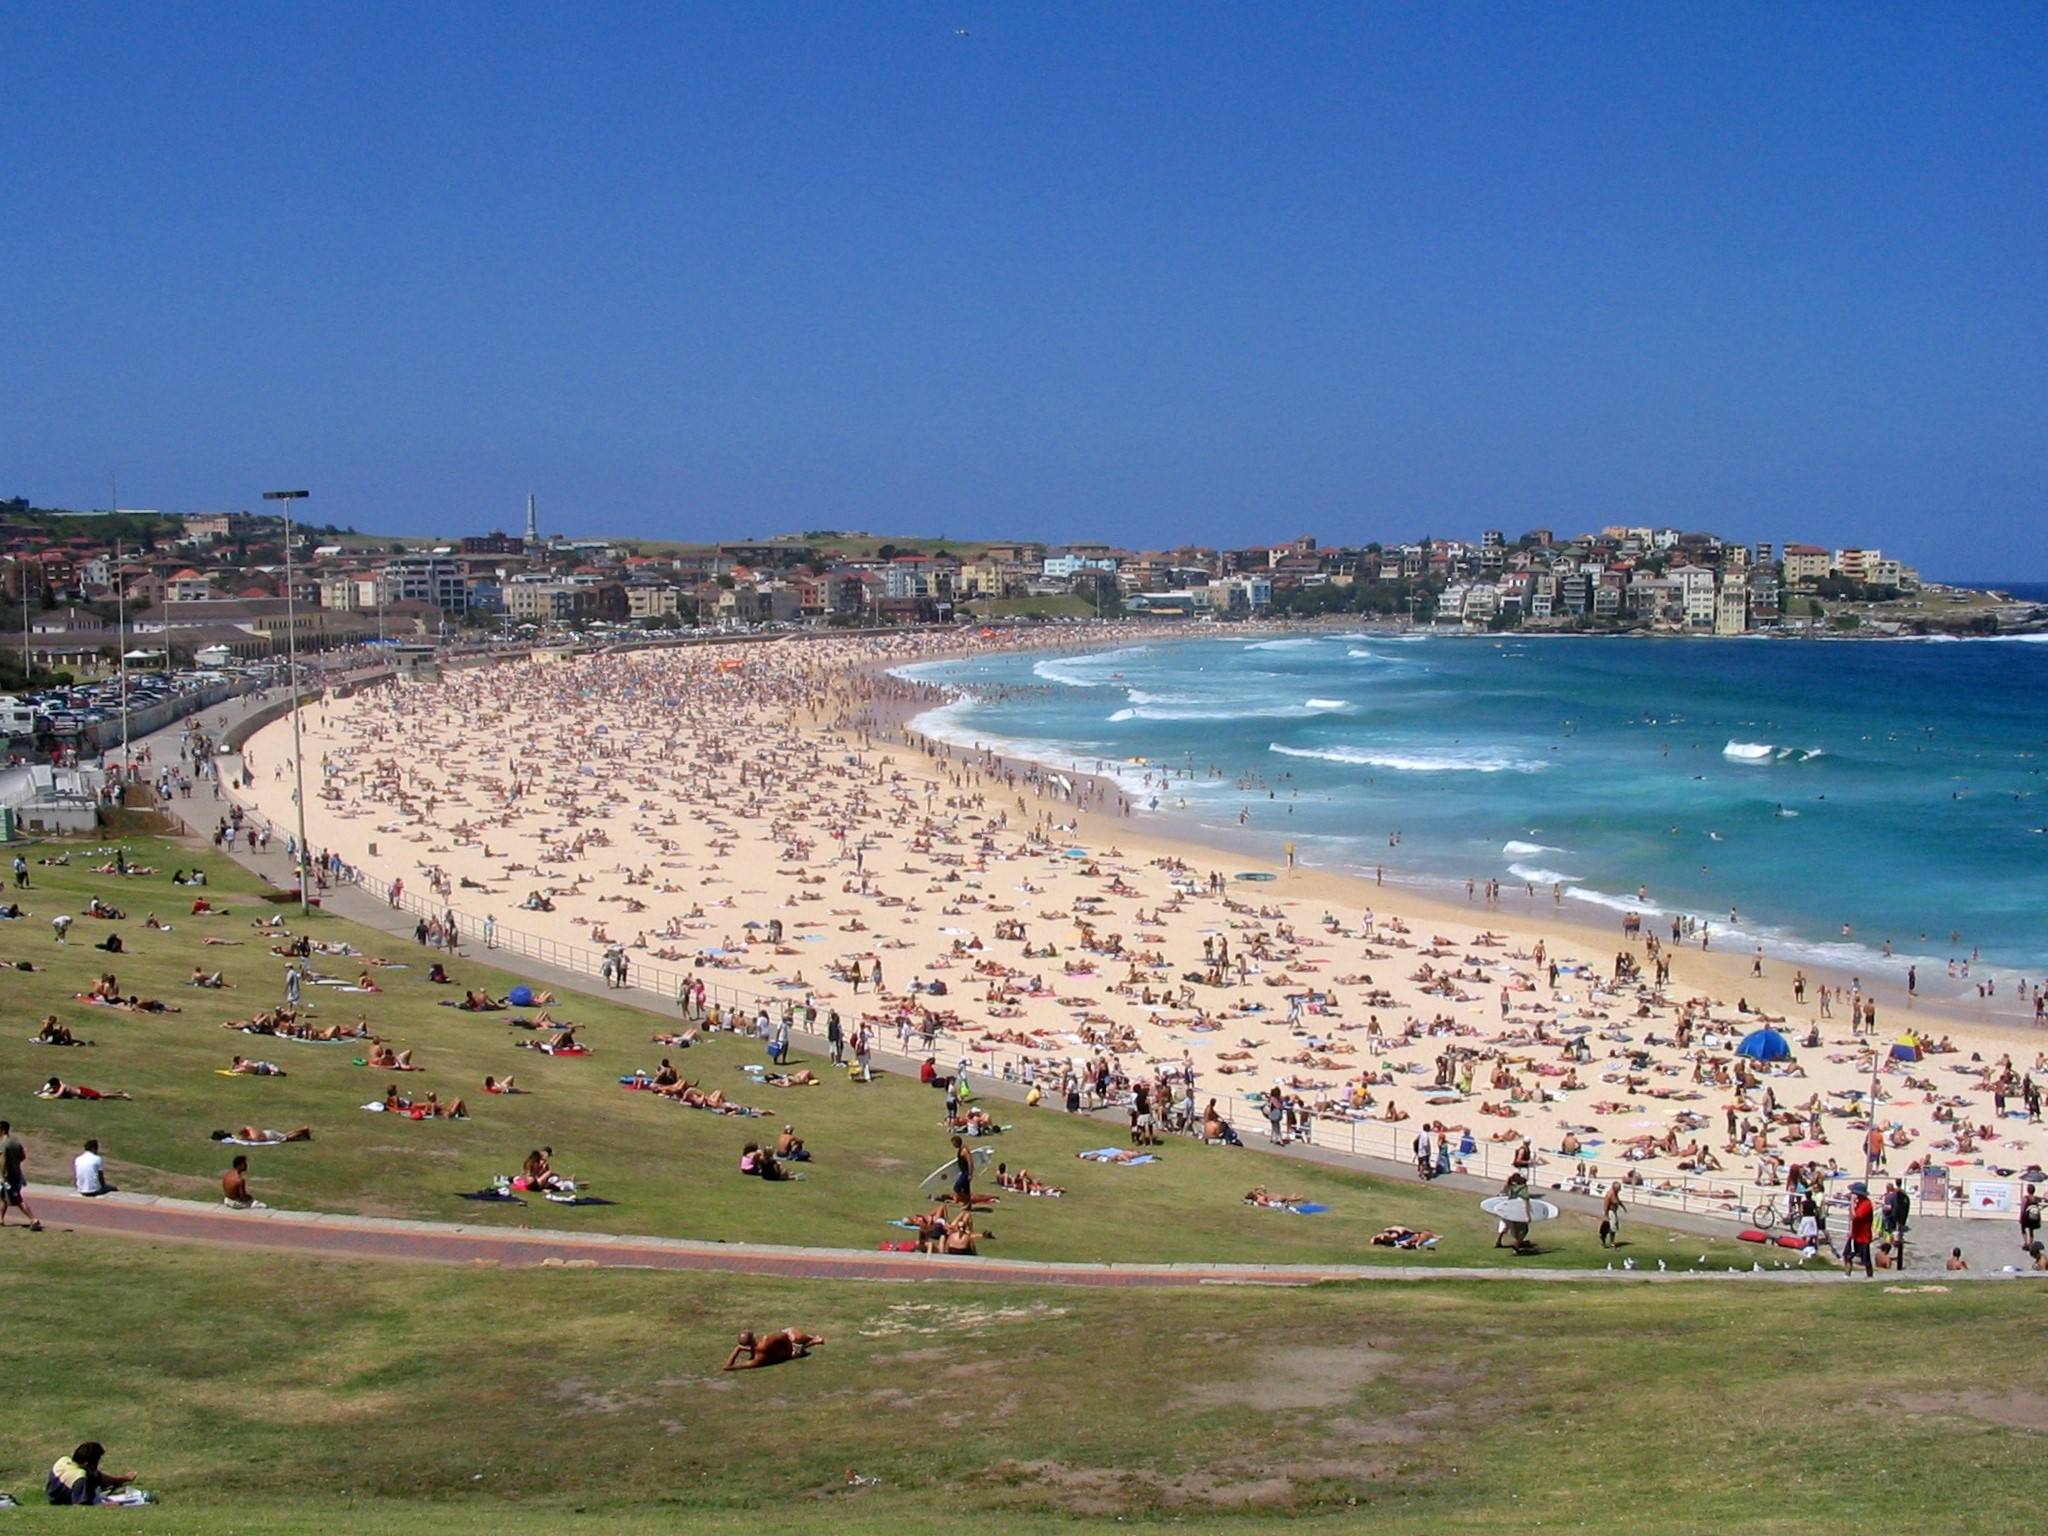 Bondi Beach By Andrea Schaffer from Sydney, Australia (Bondi beach  Uploaded by berichard) [CC-BY-2.0 (http://creativecommons.org/licenses/by/2.0)], via Wikimedia Commons